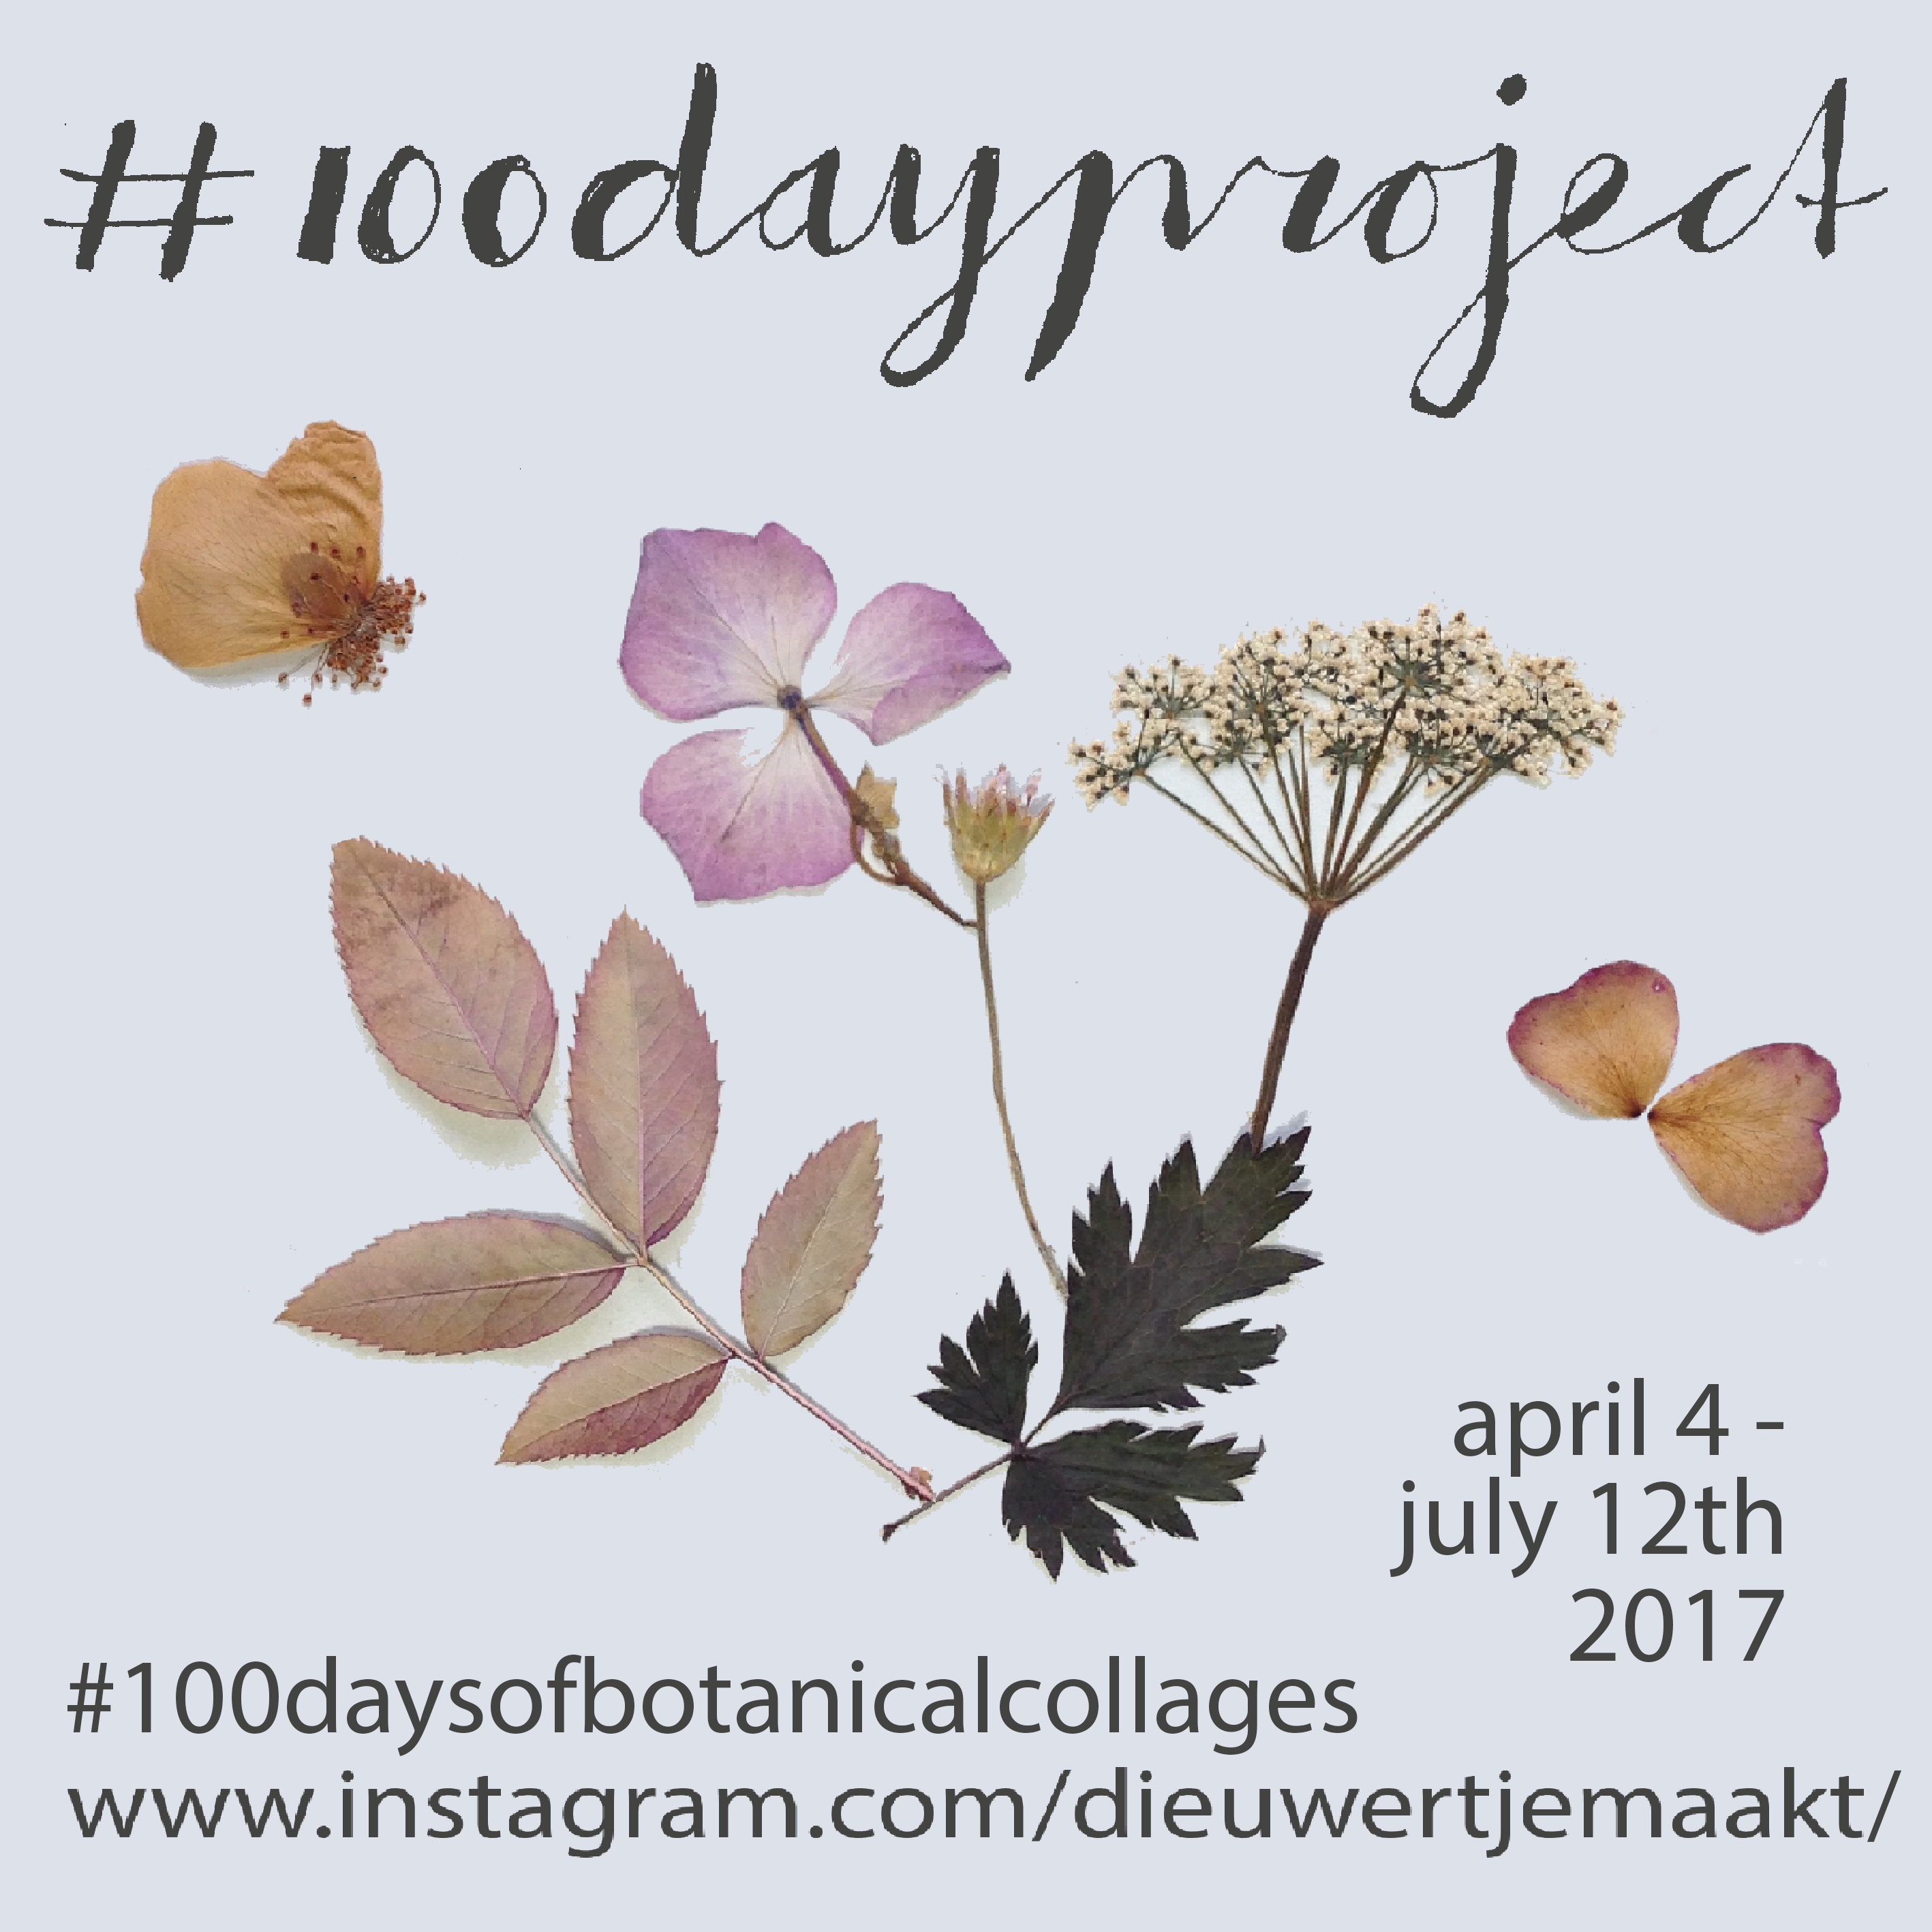 #100daysofbotanicalcollages